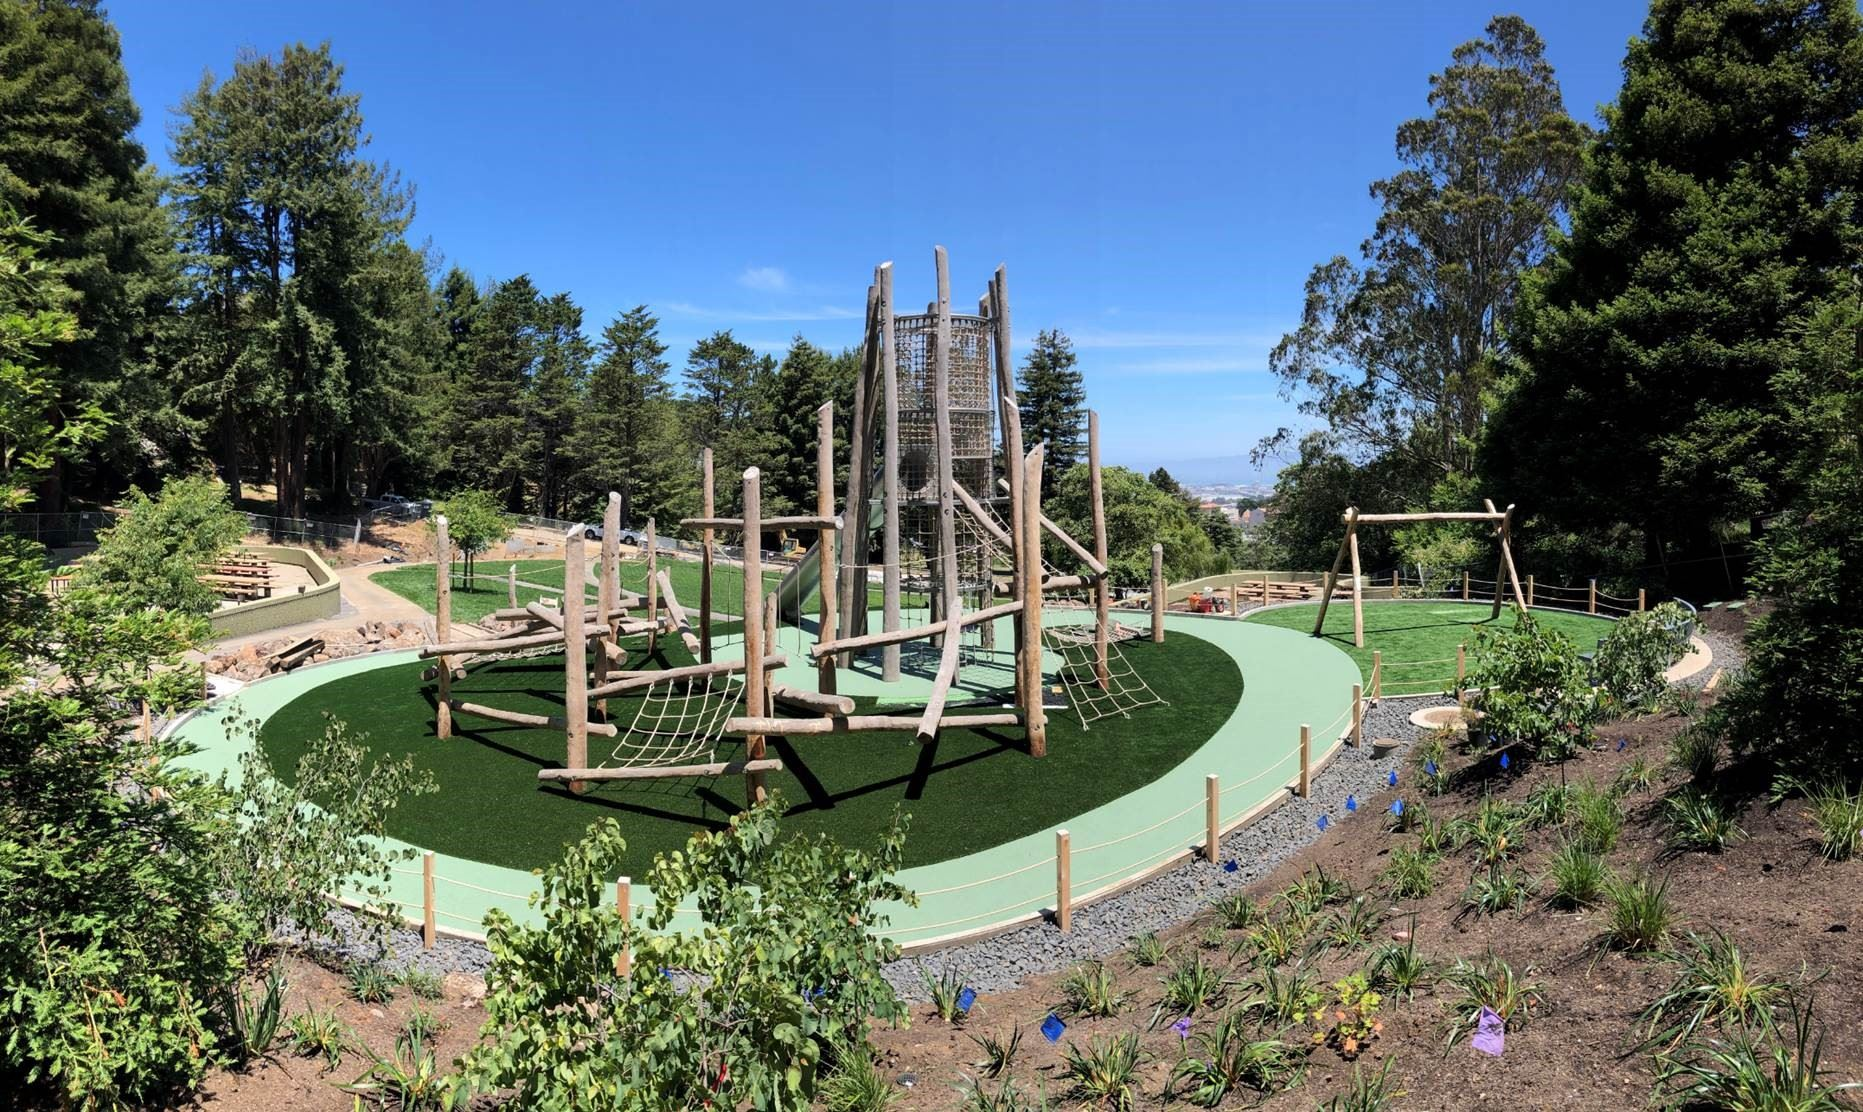 McLaren Park new playground shown with wood log features, a large central wood structure with a slid